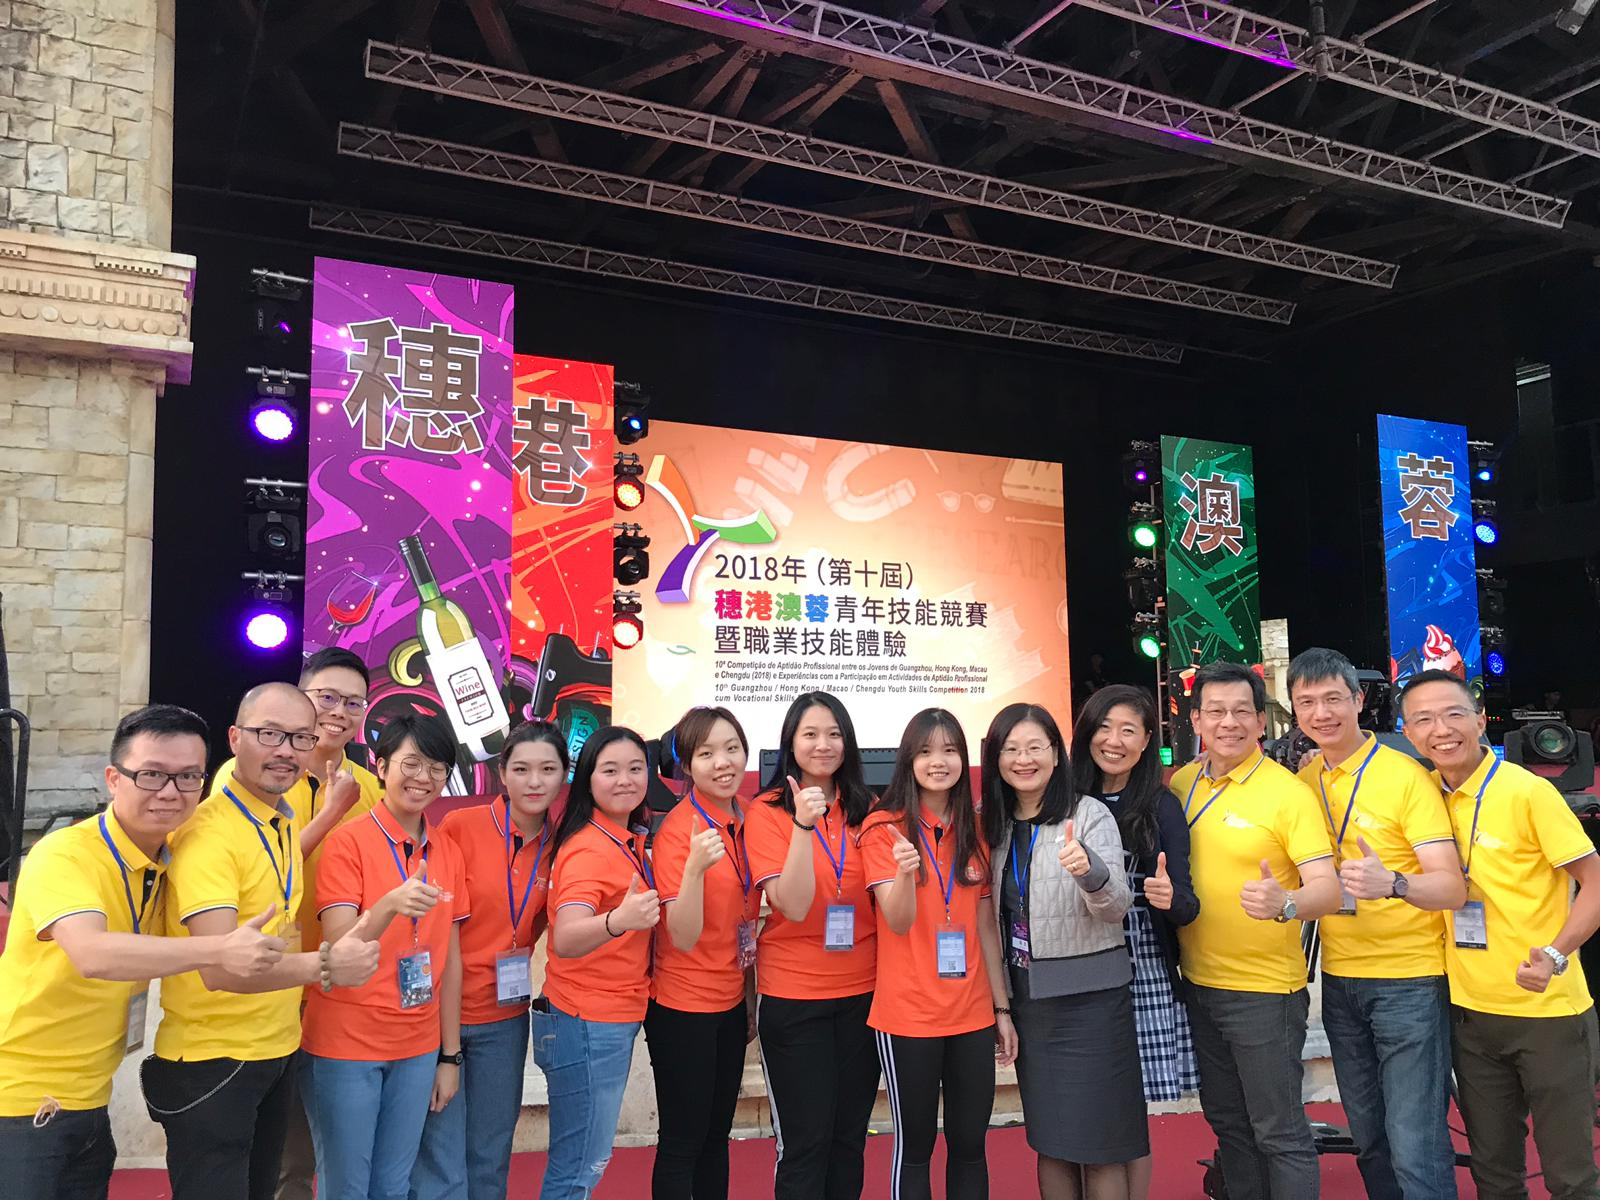 The 10th Guangzhou, Hong Kong, Macau and Chengdu (GHMC) Youth Skills Competition